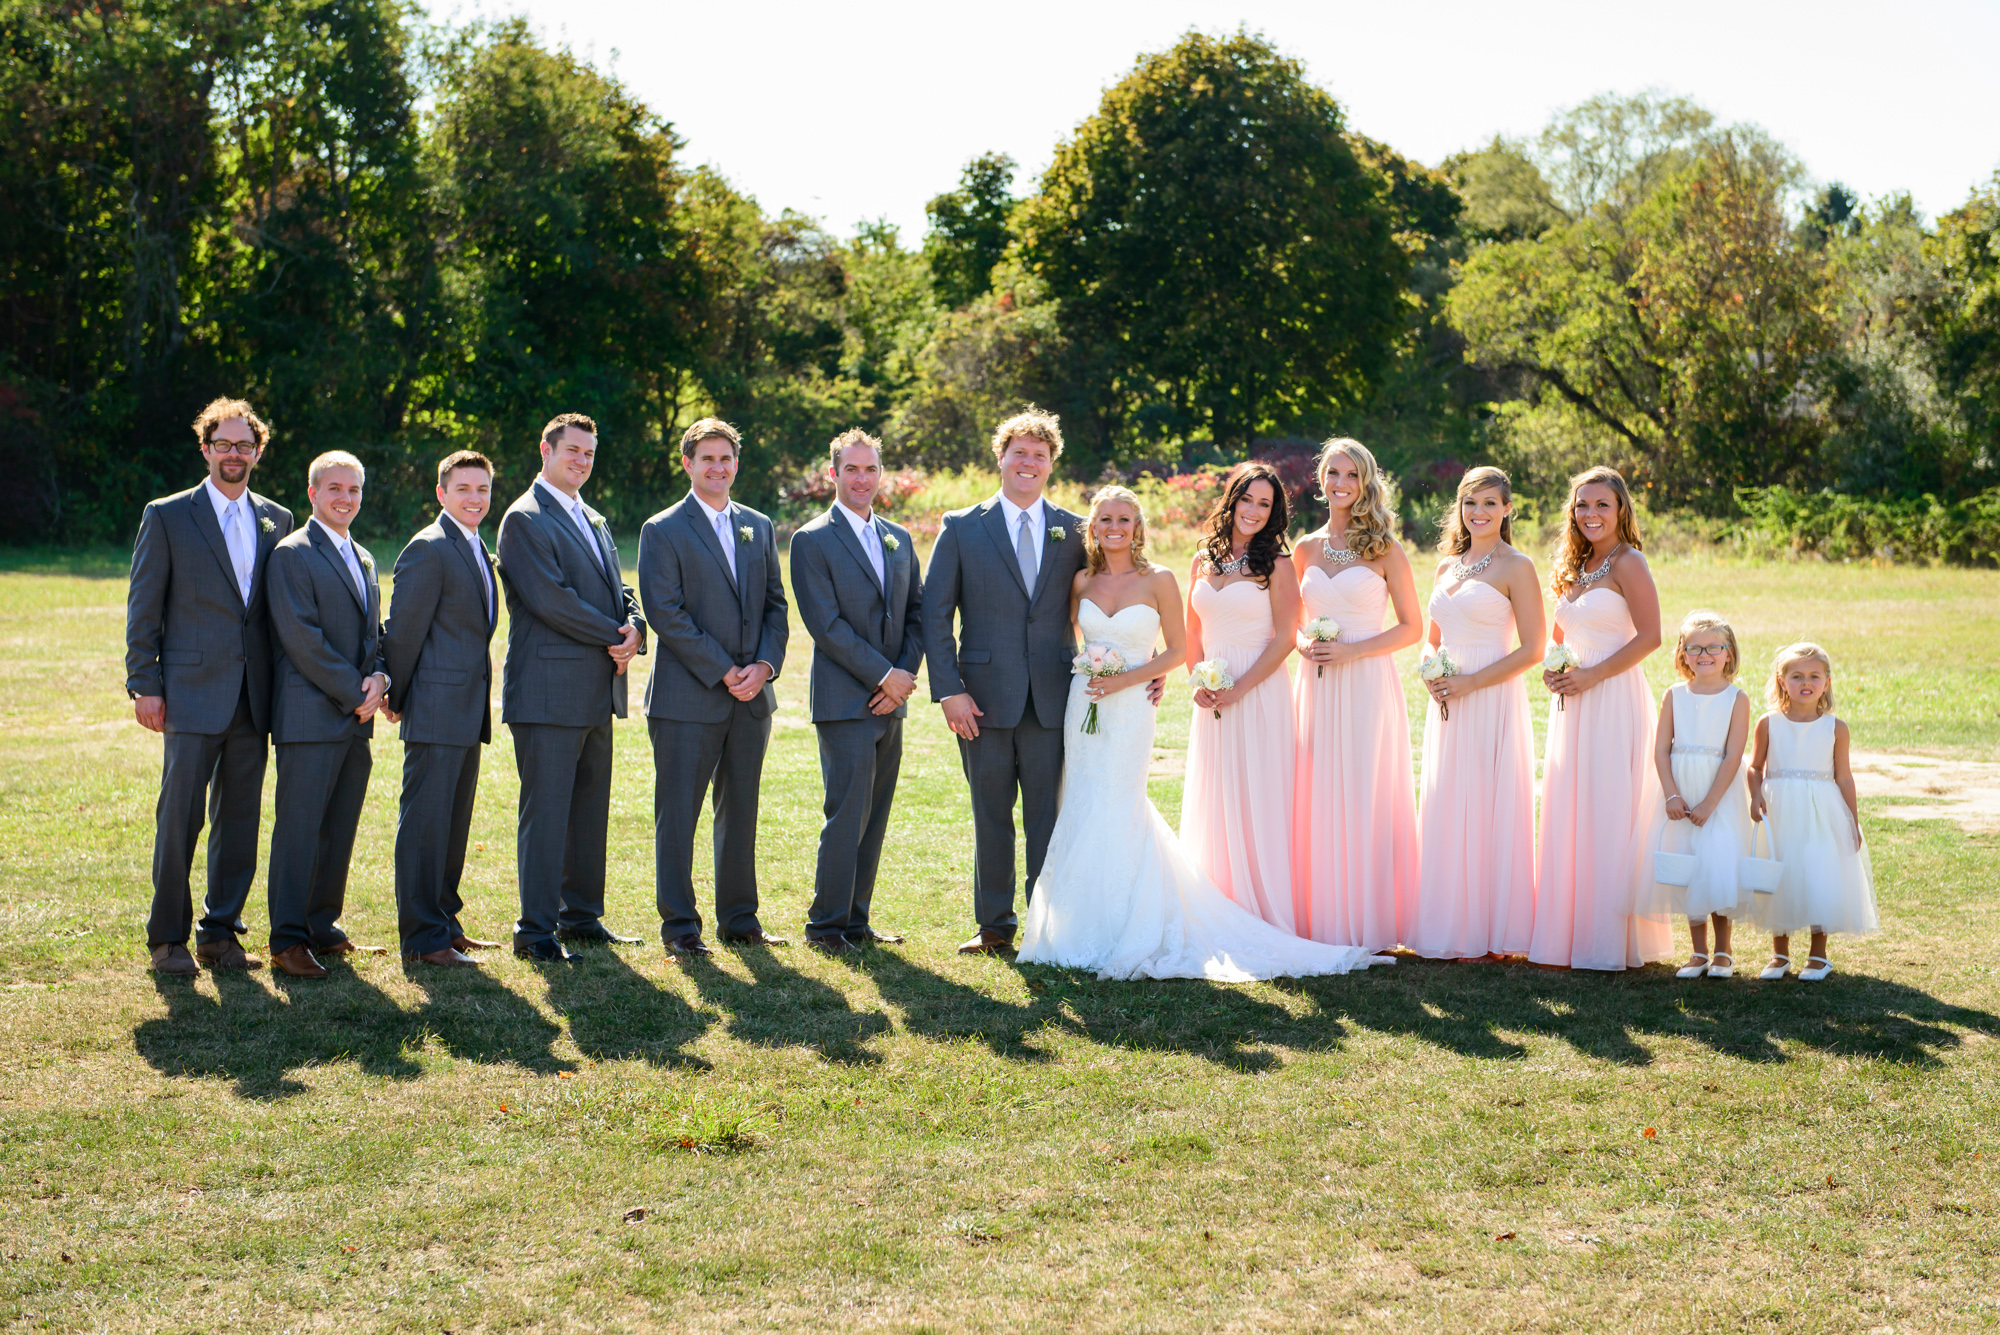 A bride and groom with groomsmen and bridesmaids on a field behind the Grange Hall in West Tisbury photo by David Welch Photography